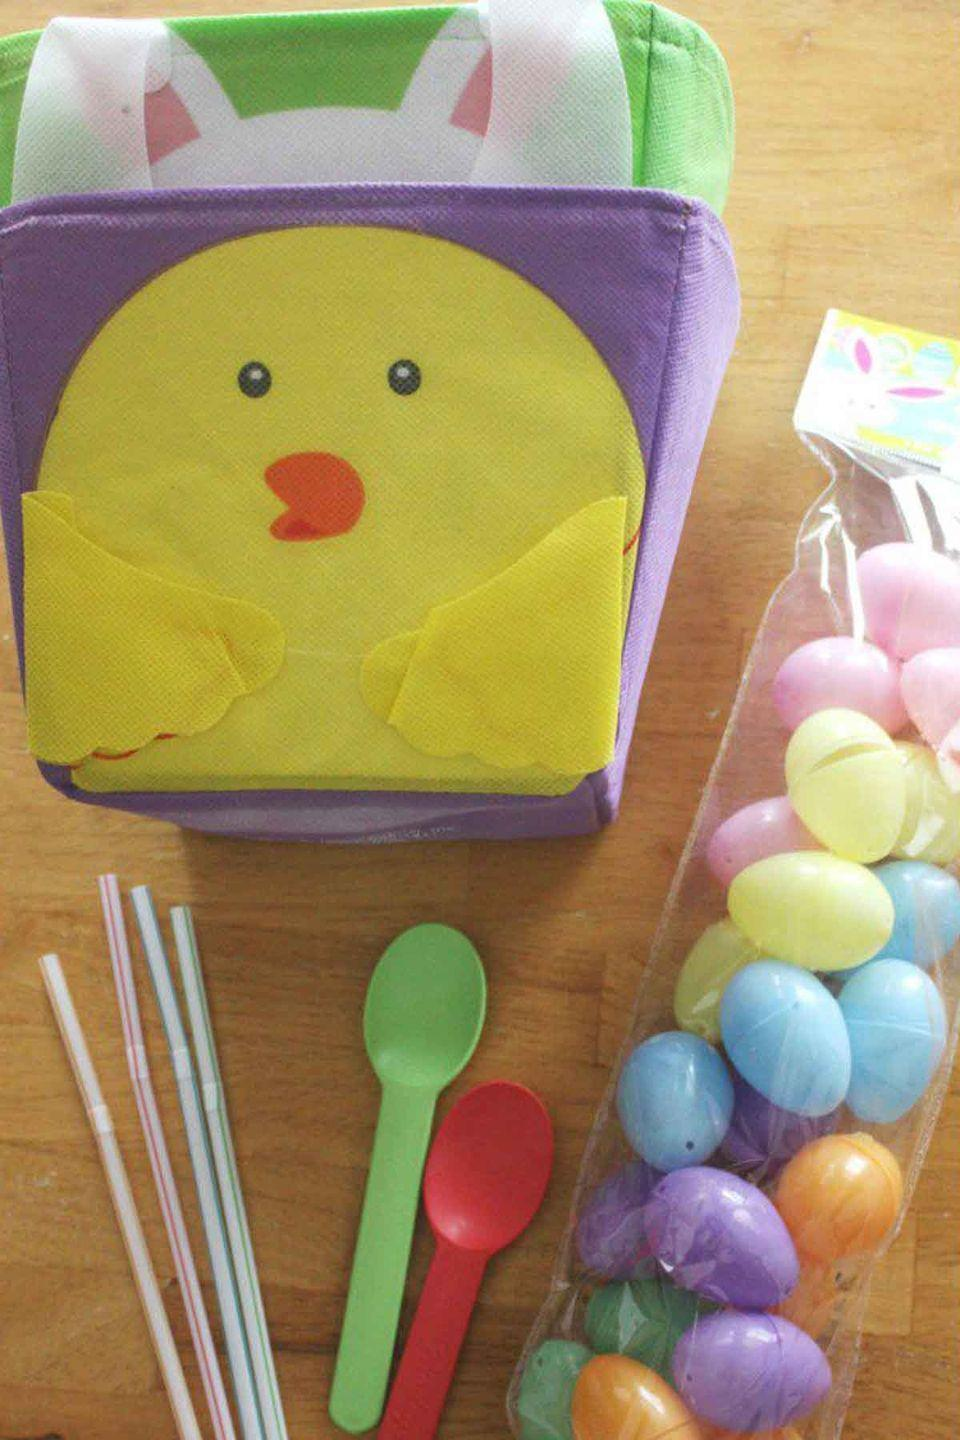 """<p>Love Minute-to-Win-It games? Here's the Easter version! <br></p><p><em>Get the tutorial at <a href=""""http://littlebinsforlittlehands.com/minute-to-win-it-easter-games-family-game-time/"""" rel=""""nofollow noopener"""" target=""""_blank"""" data-ylk=""""slk:Little Bins For Little Hands"""" class=""""link rapid-noclick-resp"""">Little Bins For Little Hands</a>.</em></p>"""